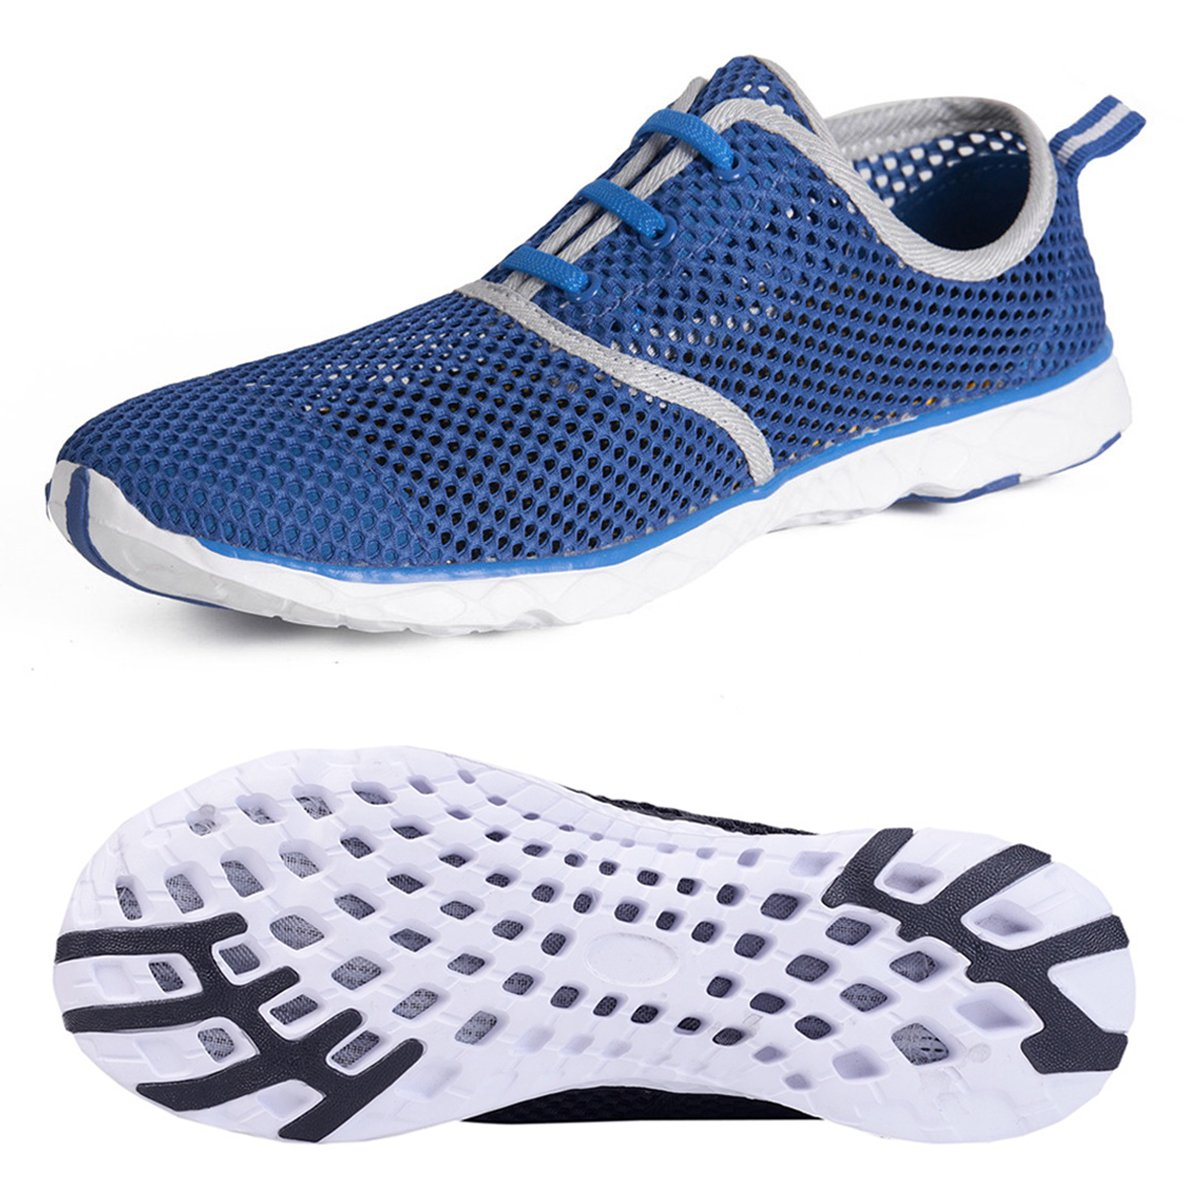 Water Shoes for Men Quick Drying Aqua Shoes Beach Pool Shoes (Blue, 44)